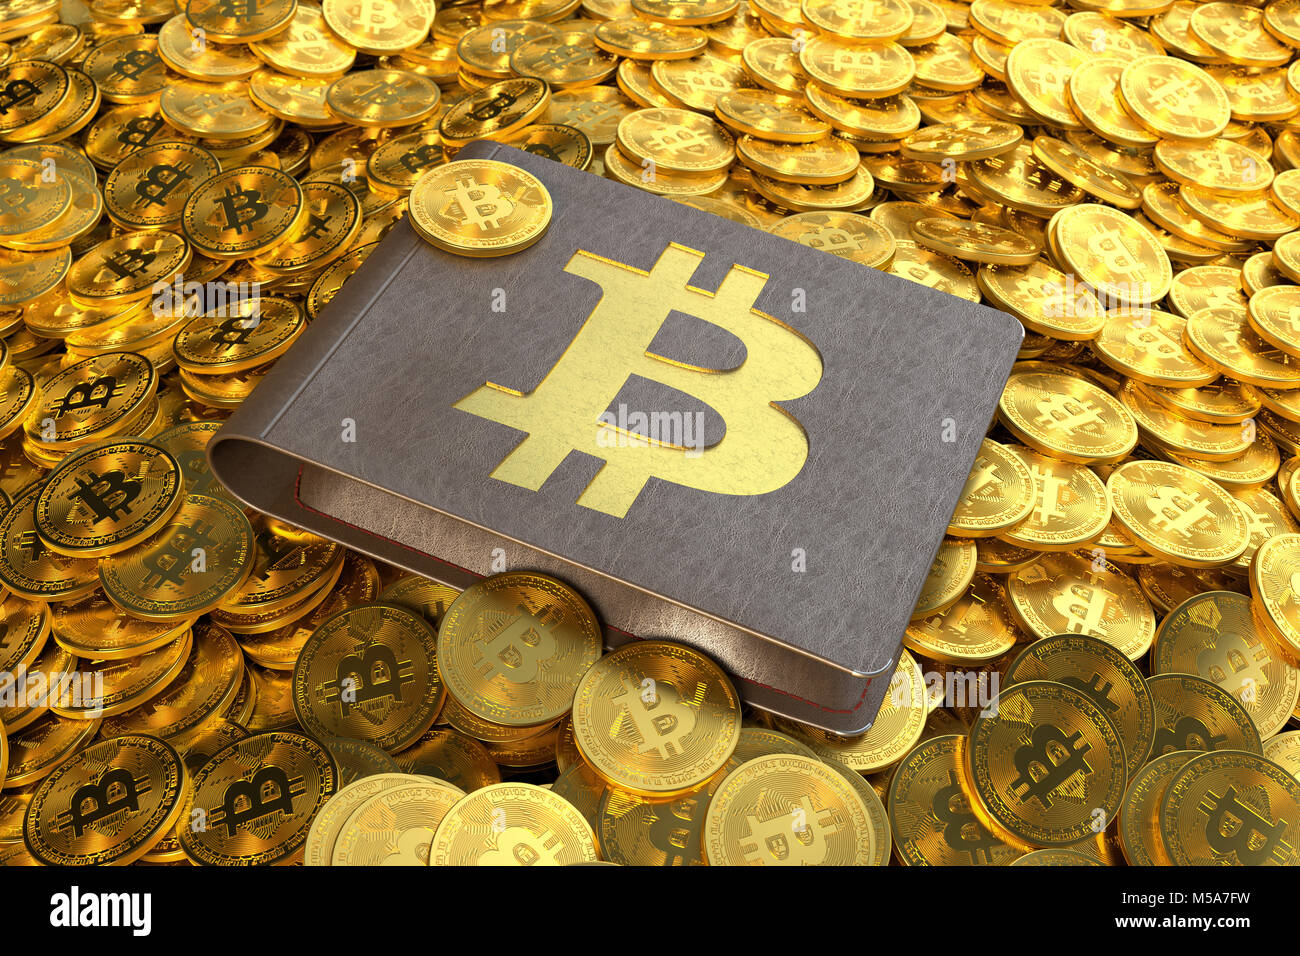 Bitcoin wallet holding Bitcoin cryptocurrency coins lying on a pile of Bitcoins - Stock Image